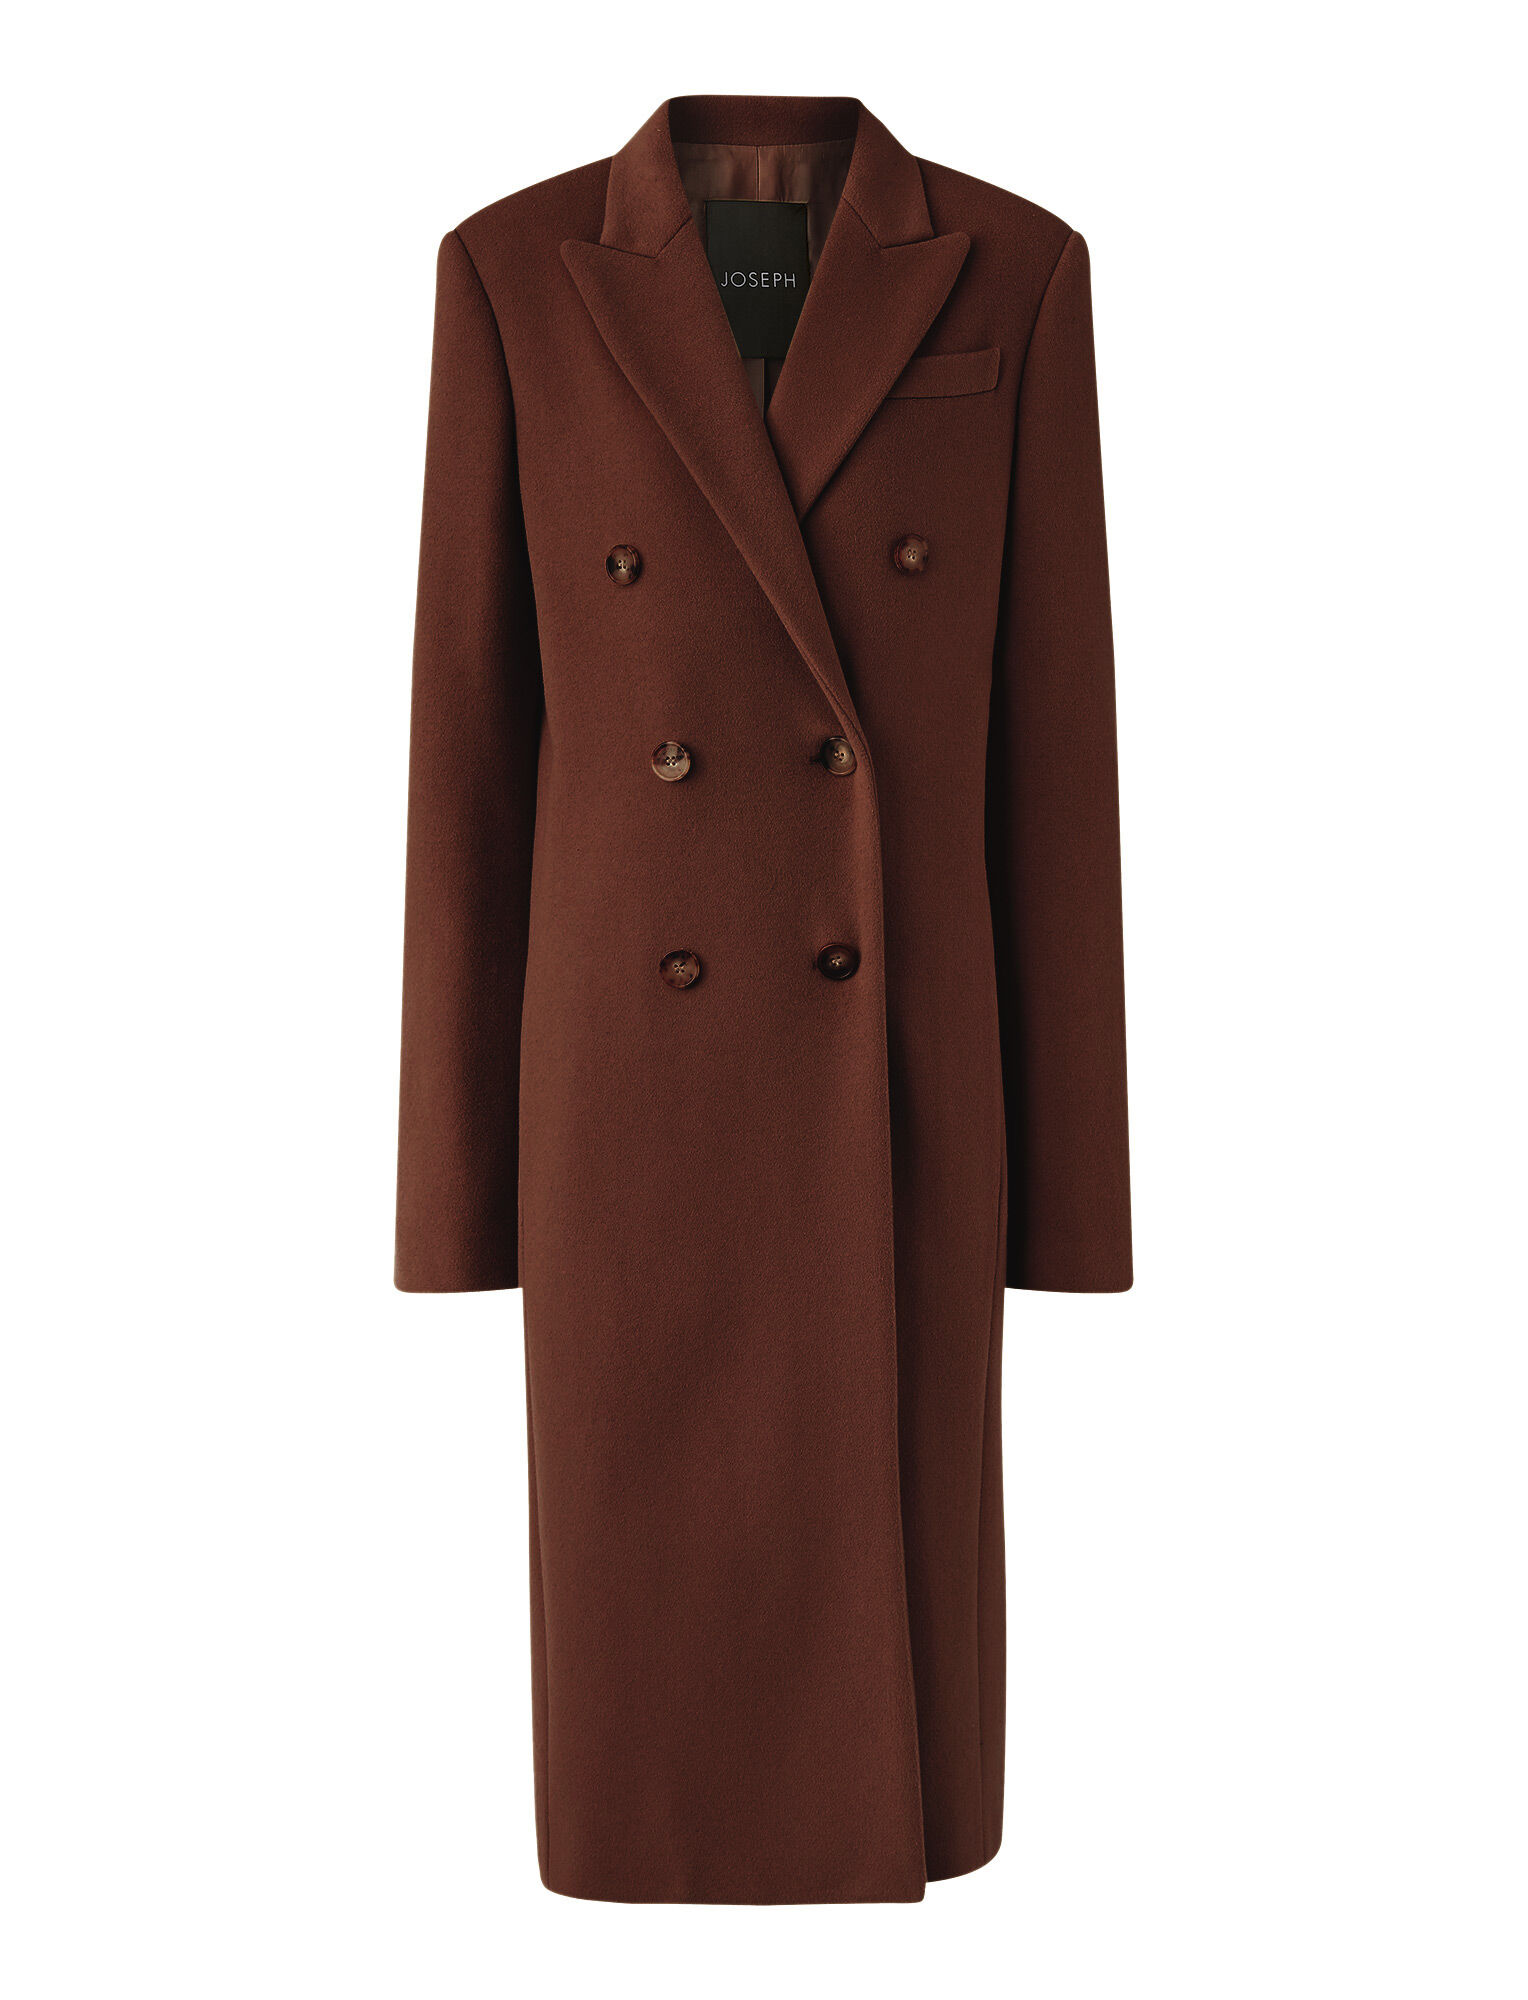 Joseph, Cam Wool Coating Coat, in Ganache